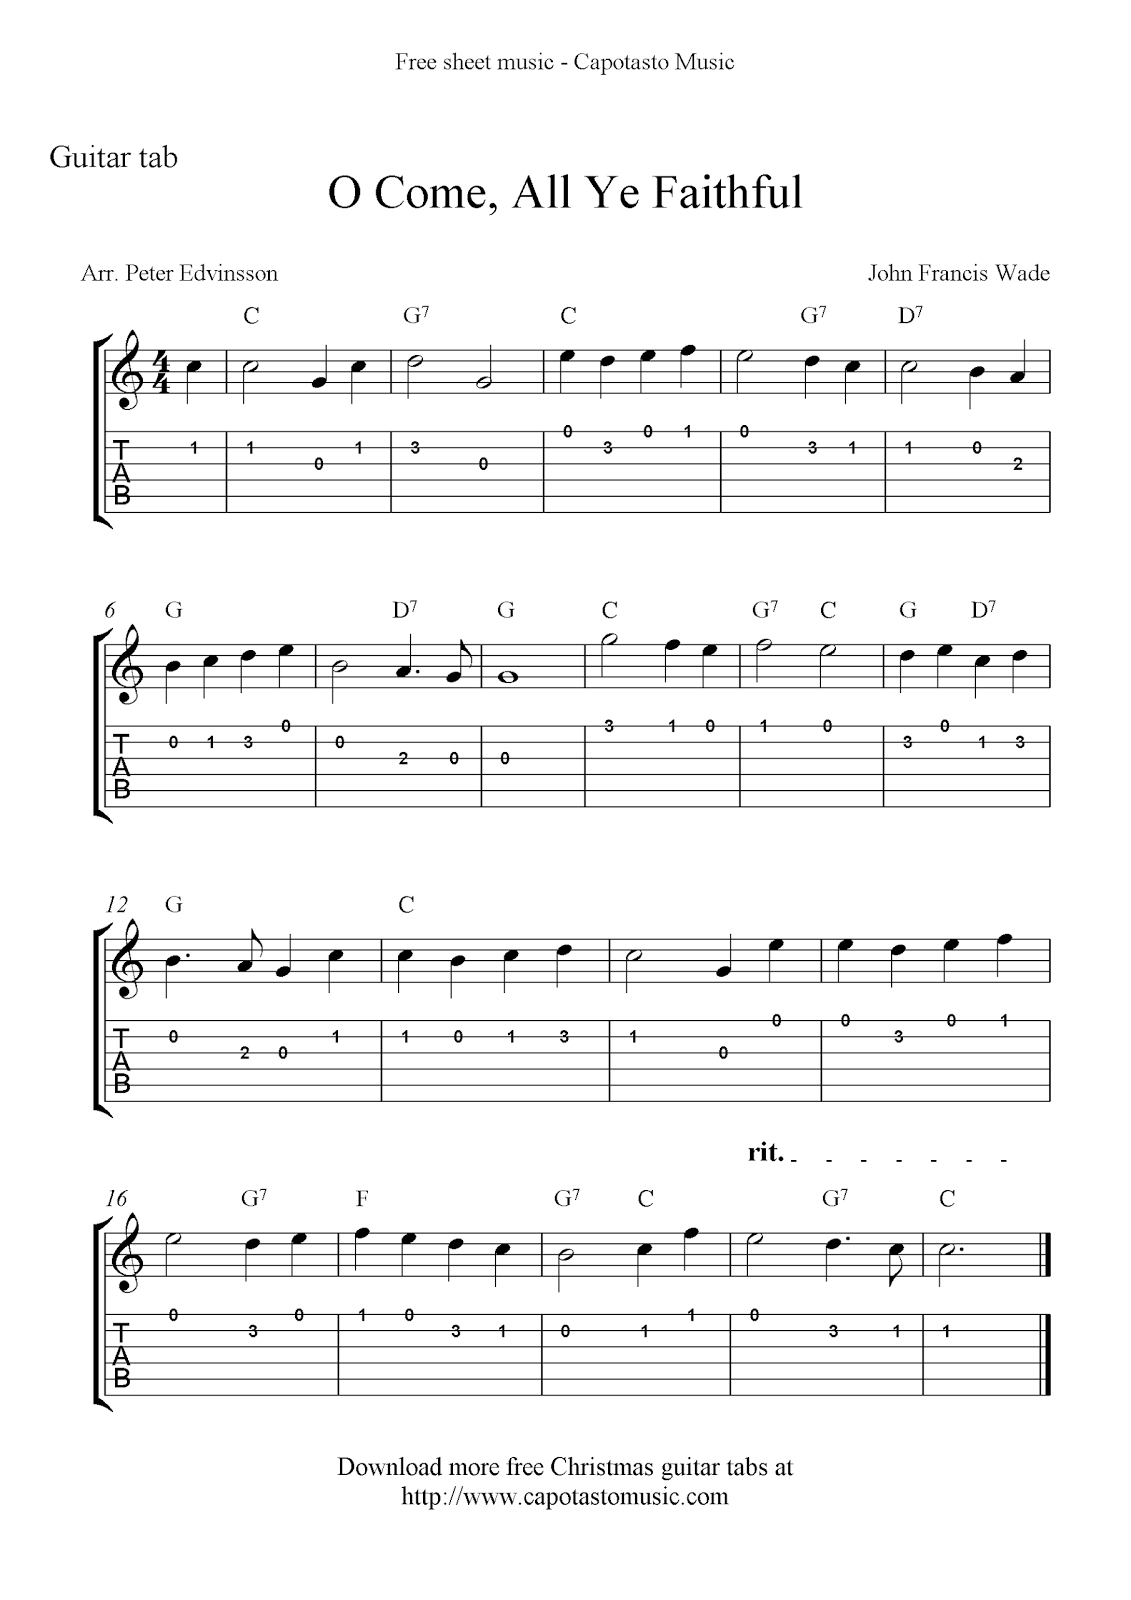 Free Printable Sheet Music: O Come, All Ye Faithful, Easy Free - Free Printable Guitar Music